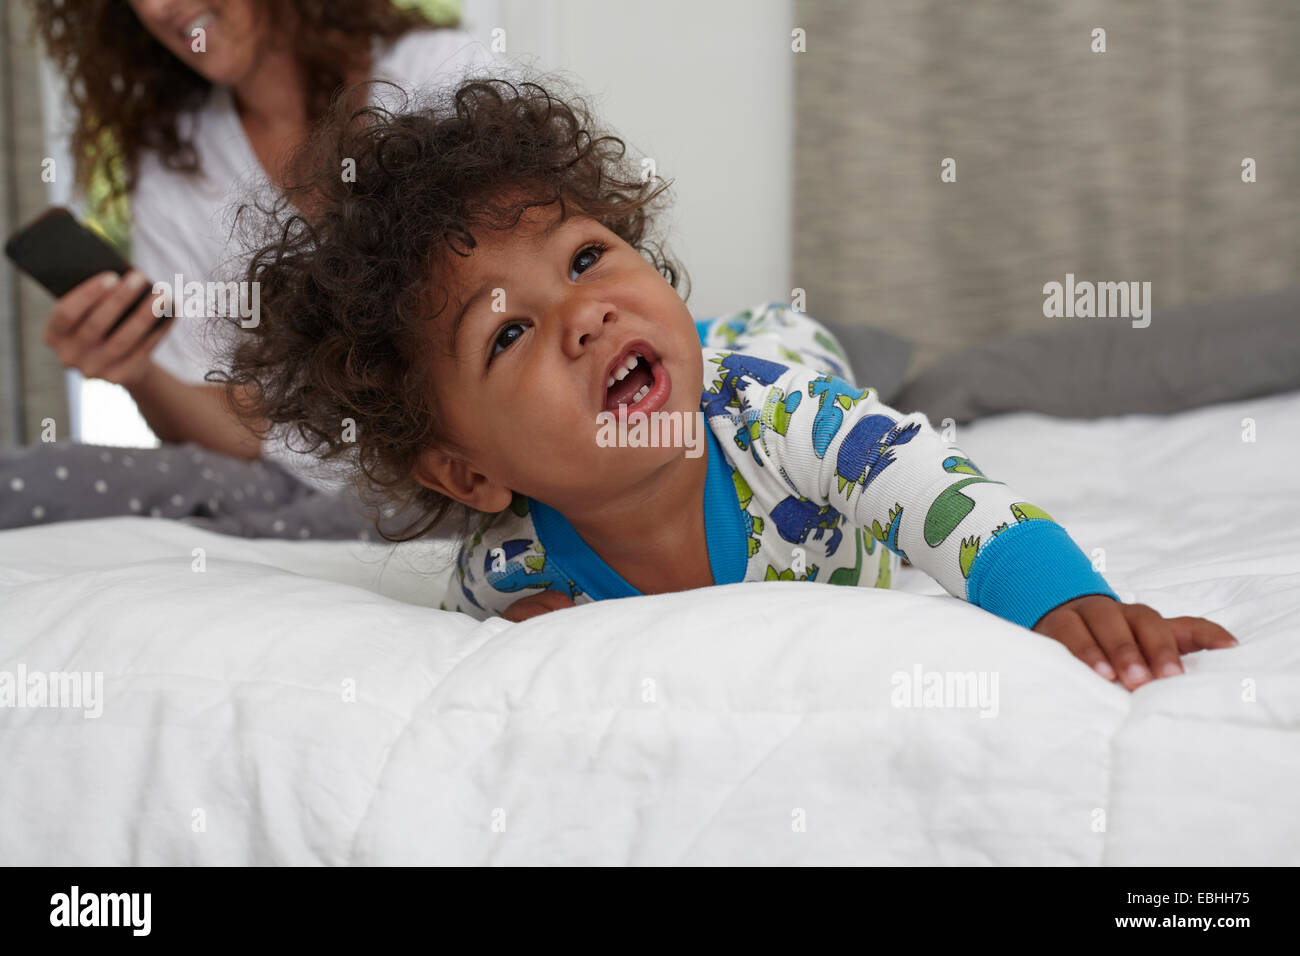 Male toddler crawling on bed whilst mother using smartphone - Stock Image